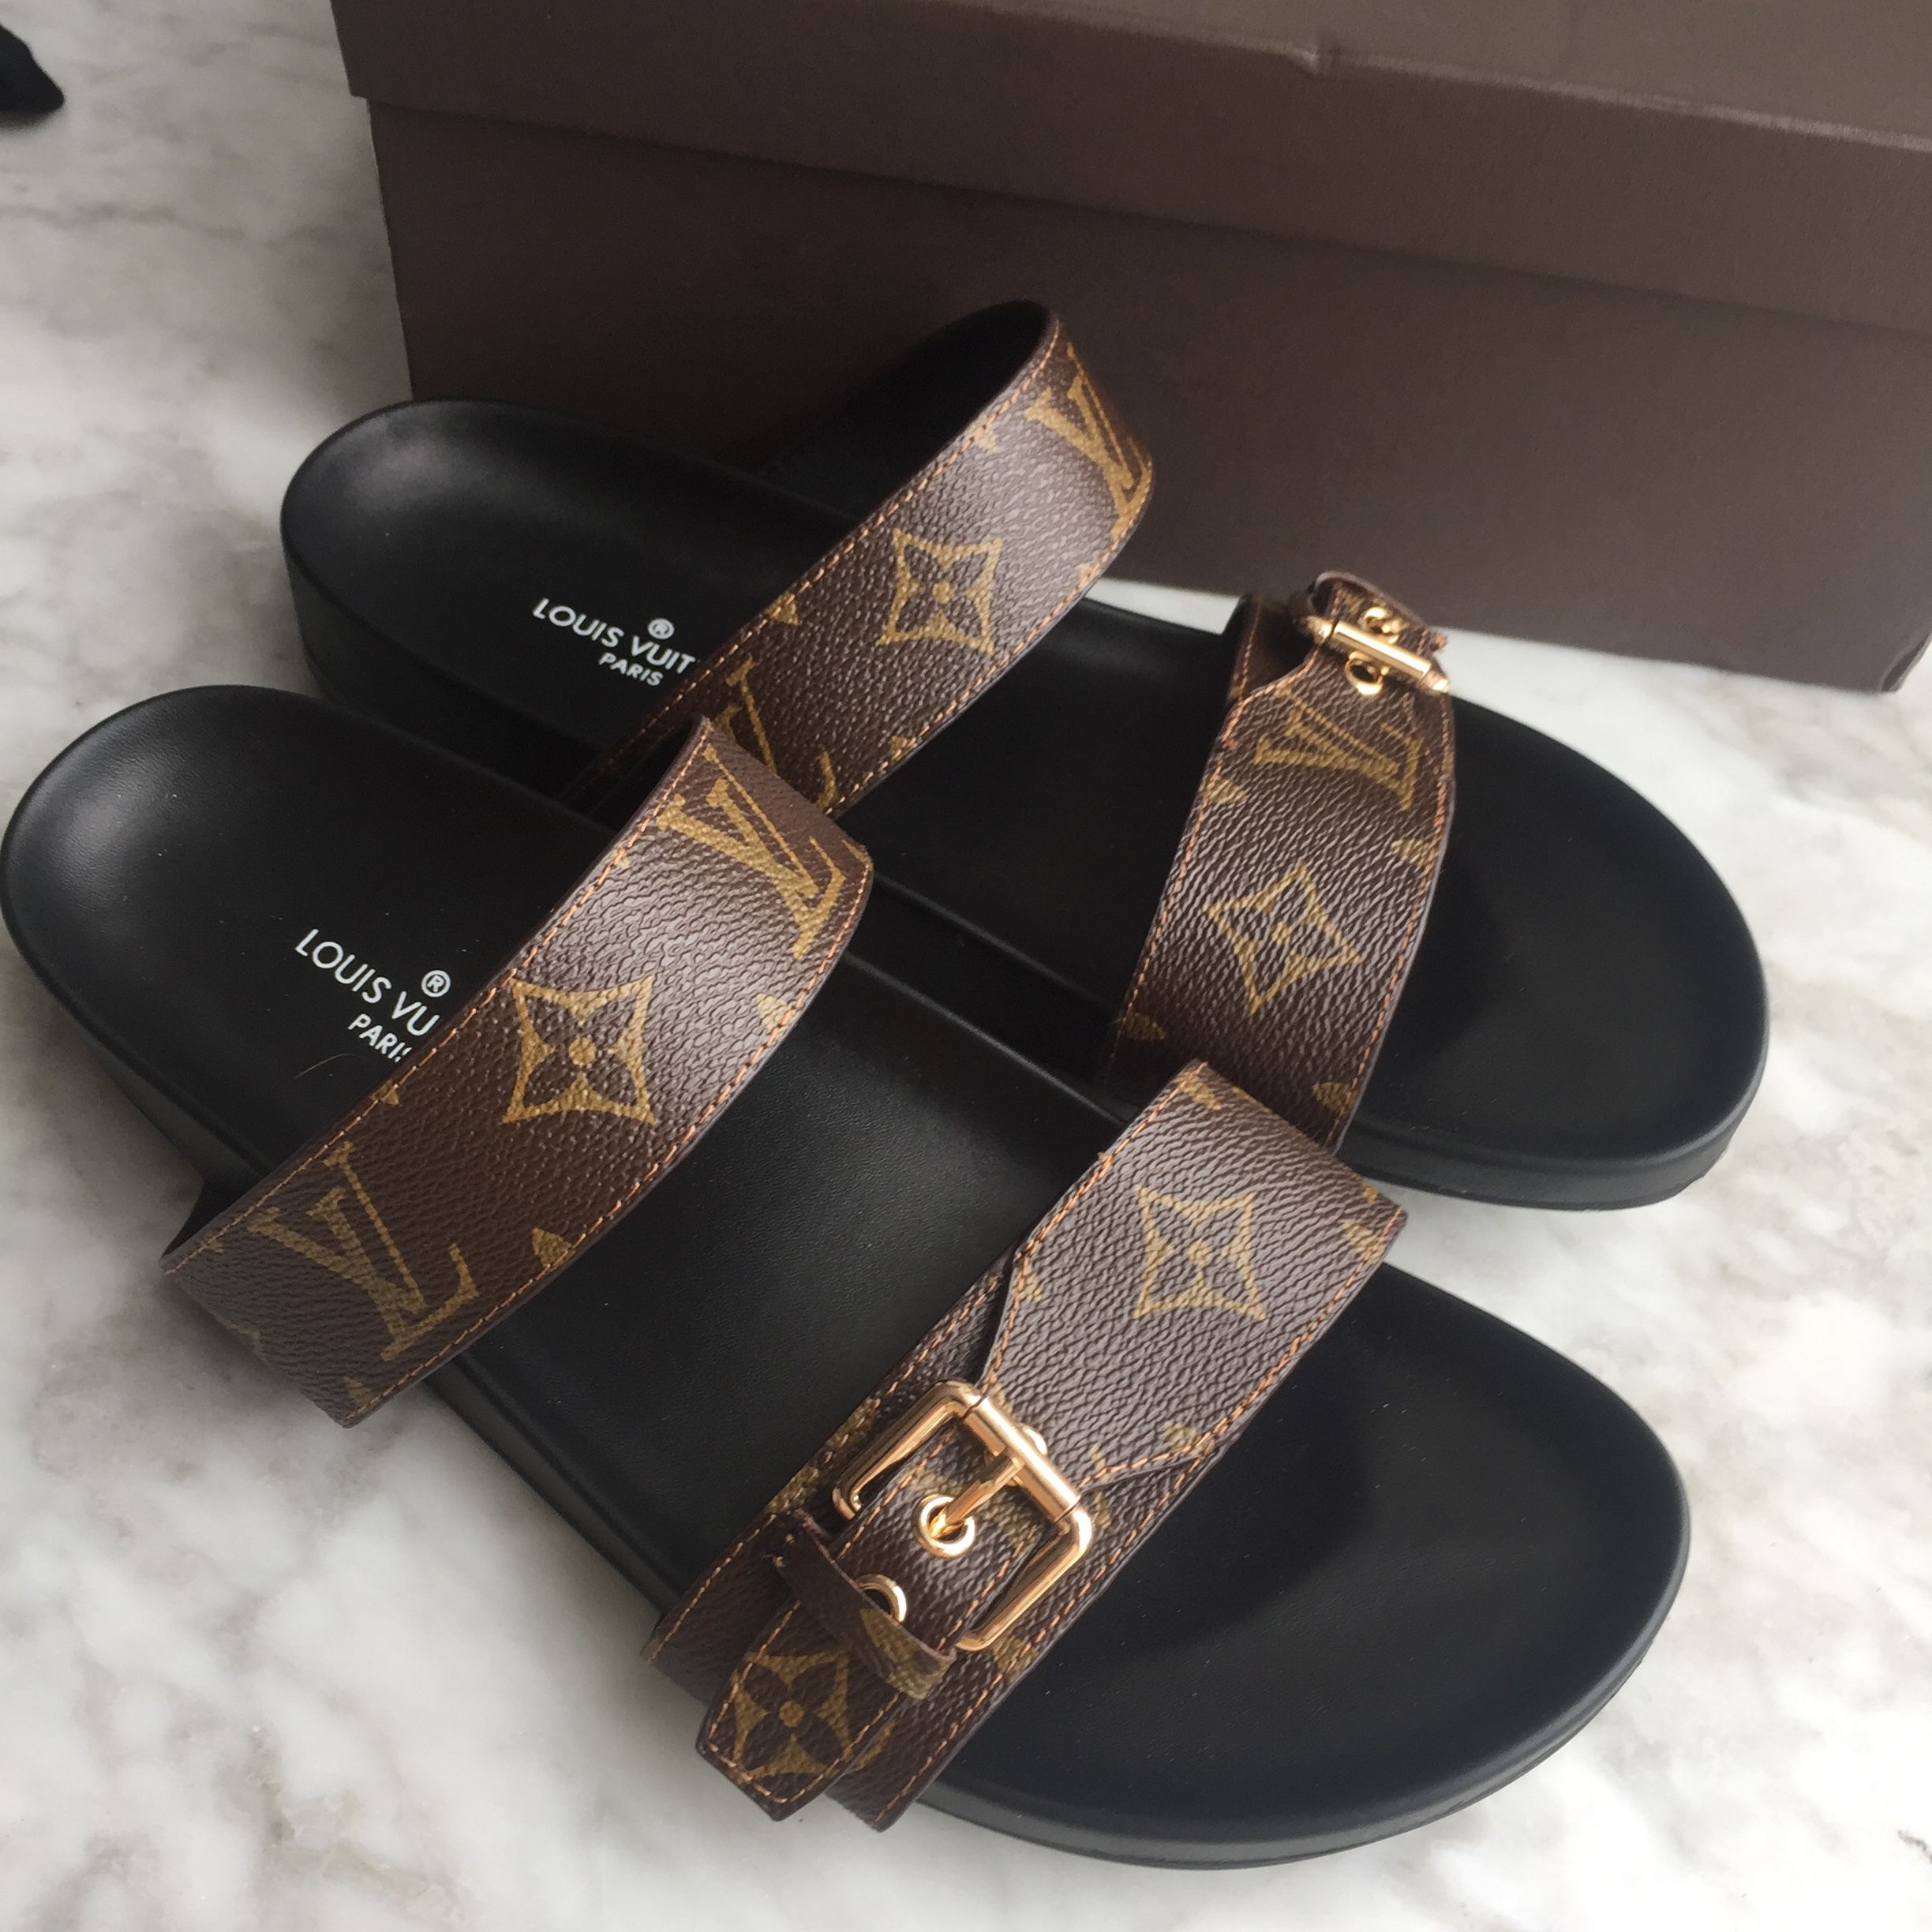 cf4c96ac78fa Louis Vuitton lv woman slippers monogram slides flats